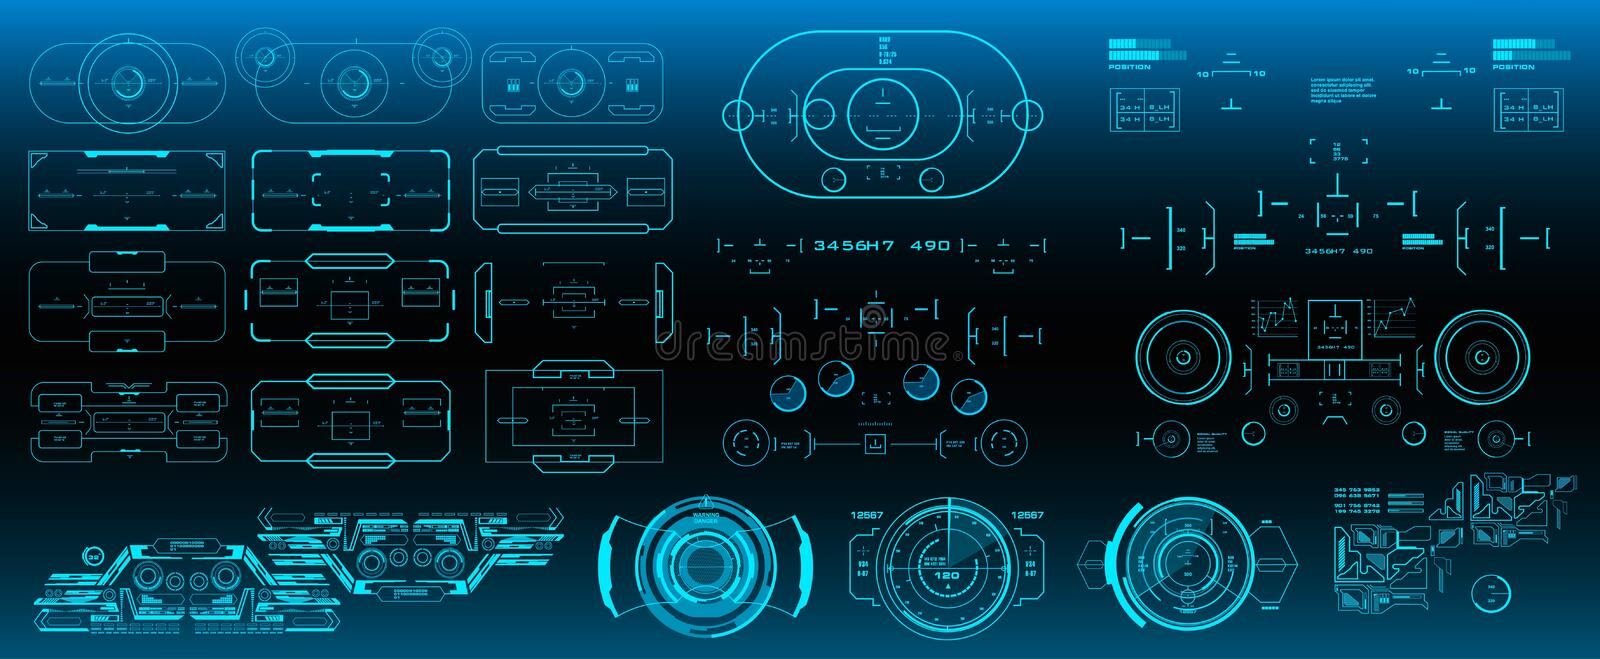 Mega pack set target. HUD futuristic user interface. Futuristic virtual graphic touch user interface. Mega pack set target. HUD futuristic user interface royalty free illustration